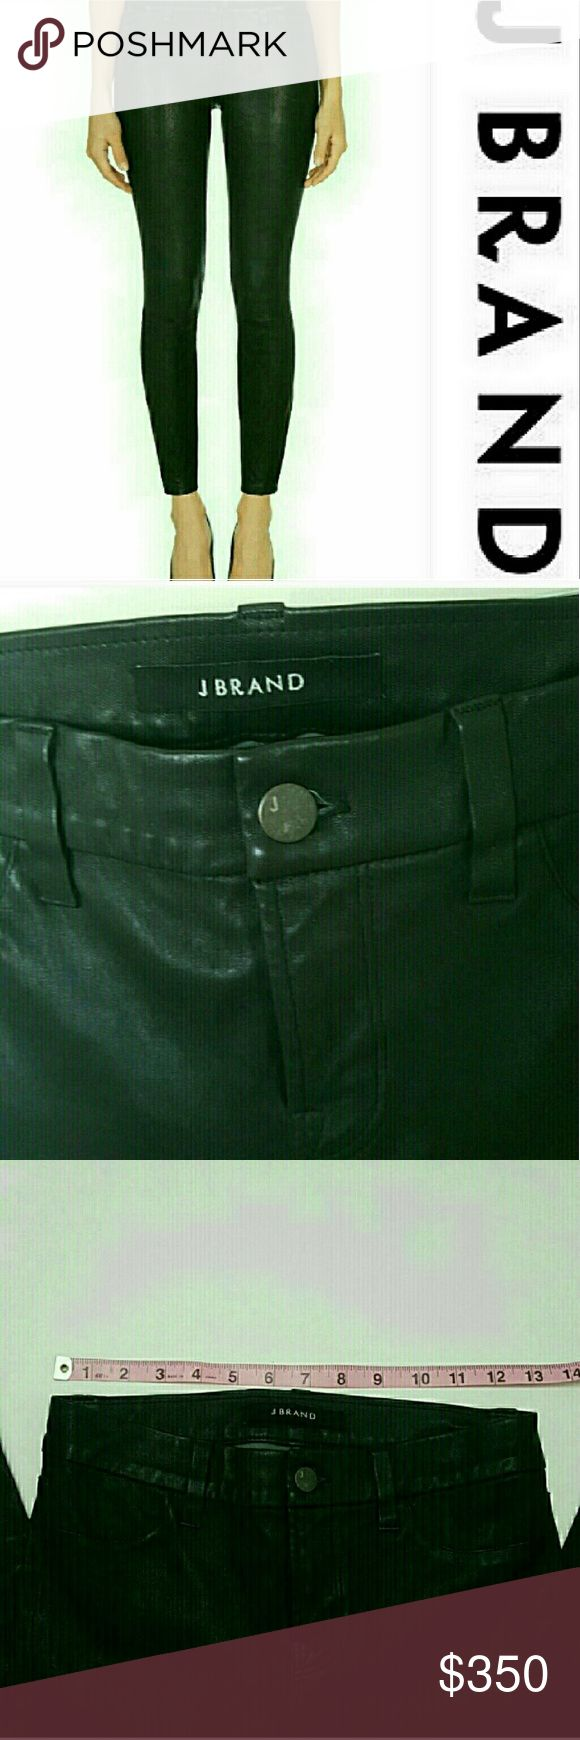 Perfect condition! J. Brand lambskin leather pants In perfect condition! J Brand leather black pants, size 26=2. See sizing recommendation in picture.  Cropped cuff style. Tight fitting.  100% lambskin leather. Sold out online/ in store. Slightly cropped style. 24.5 inch inseam. New without tags  Bundle using the bundle feature and save! j brand  Pants